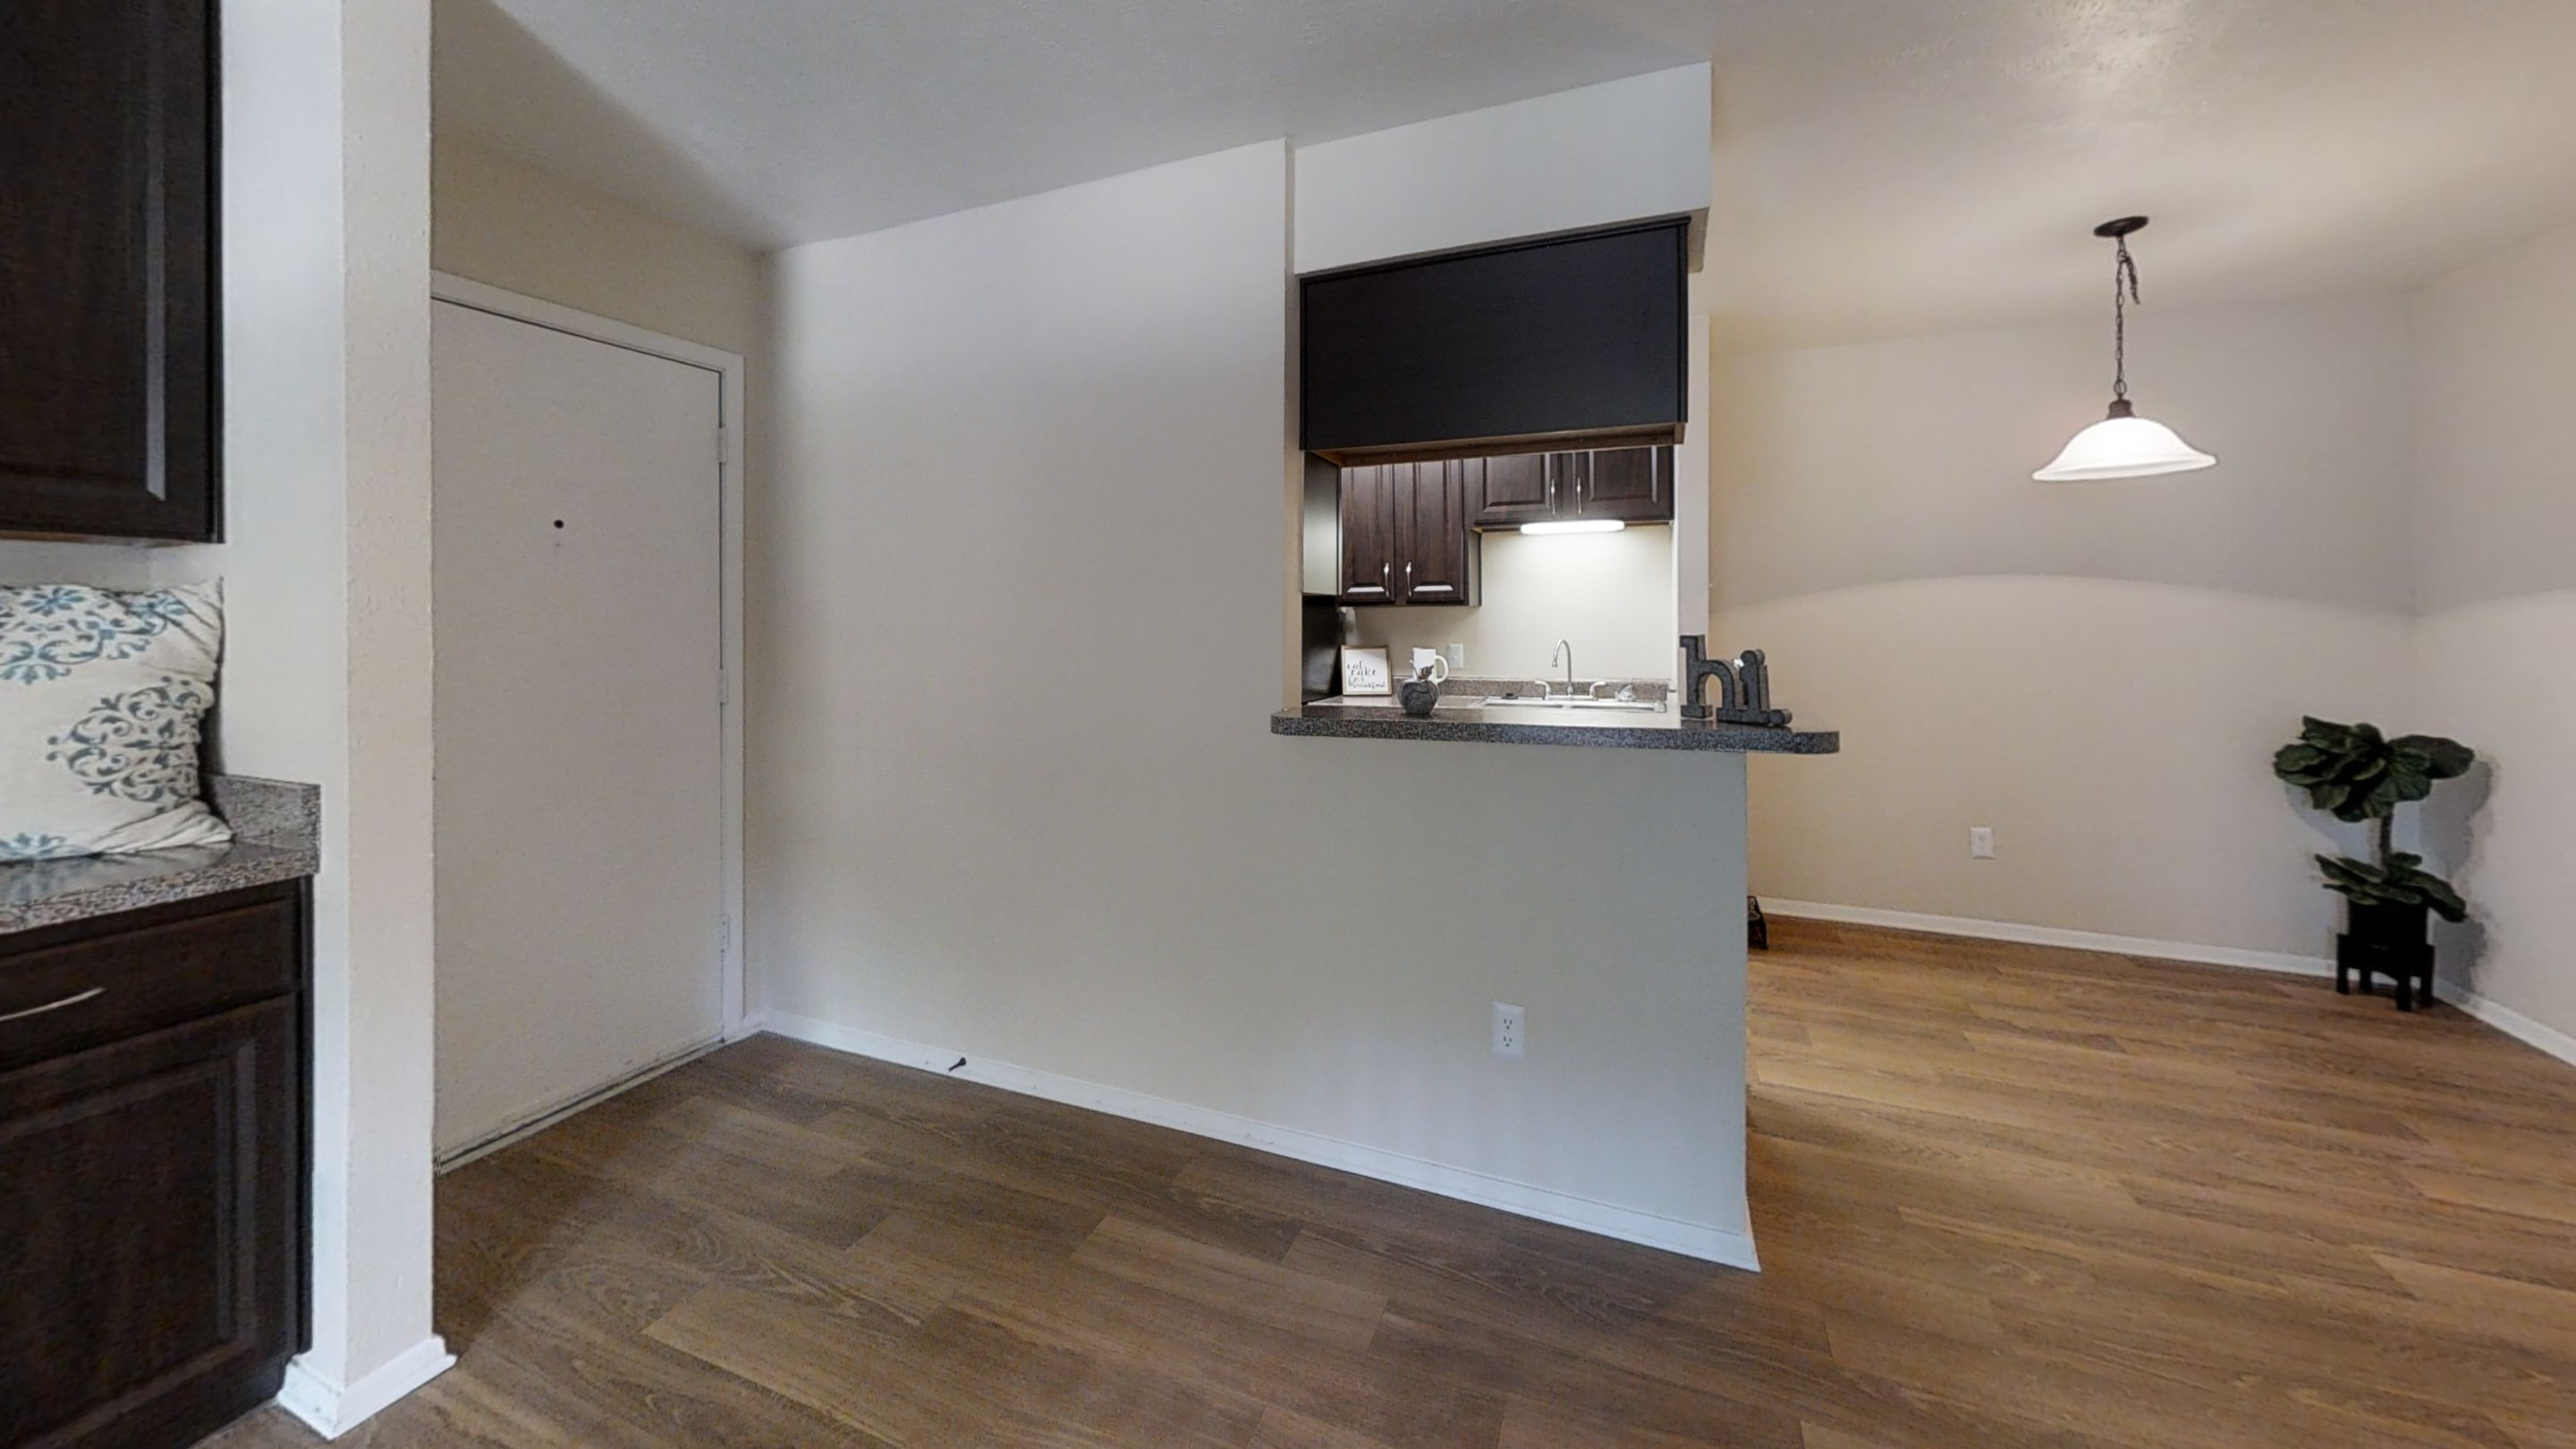 cost to refinish hardwood floors seattle of 100 best apartments in fort worth tx with pictures intended for 9990ae1e7c06fcd90d1b3d7f07839569